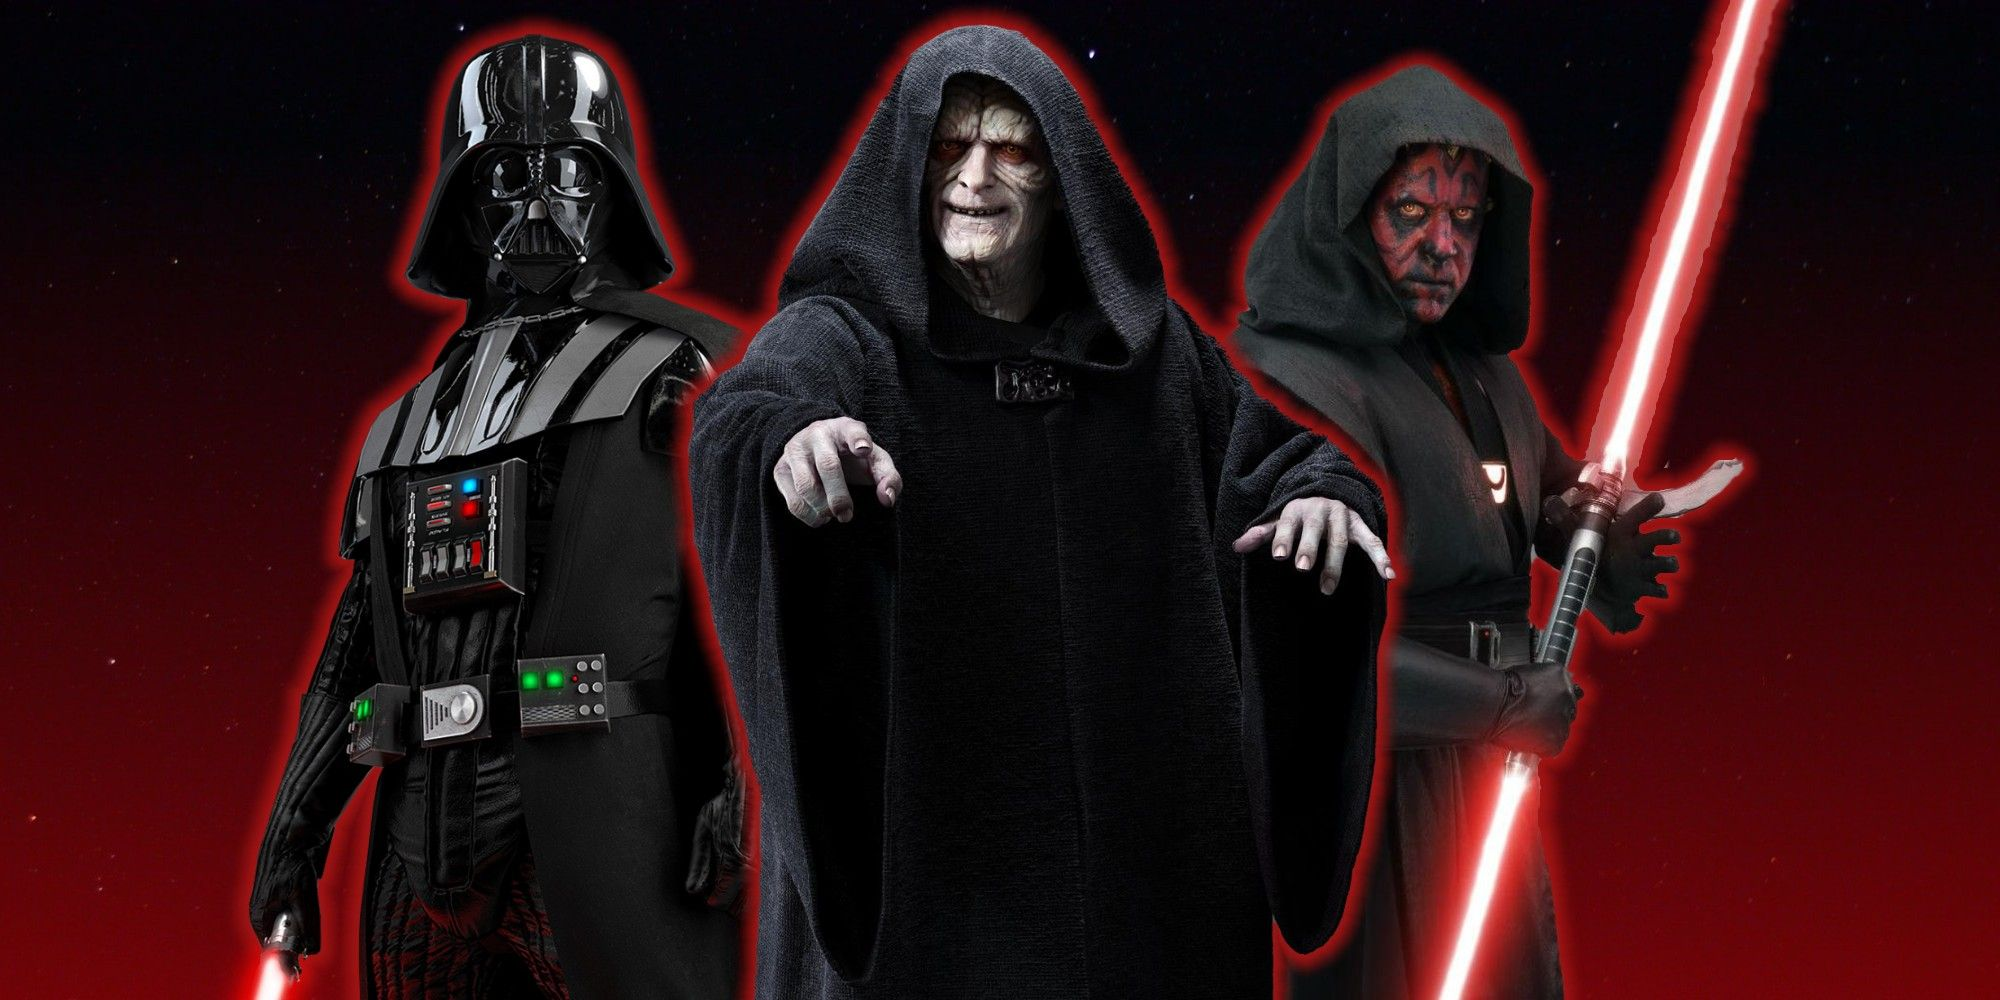 Star Wars: How Is the Dark Side Able to Cloud the Jedi's Vision?